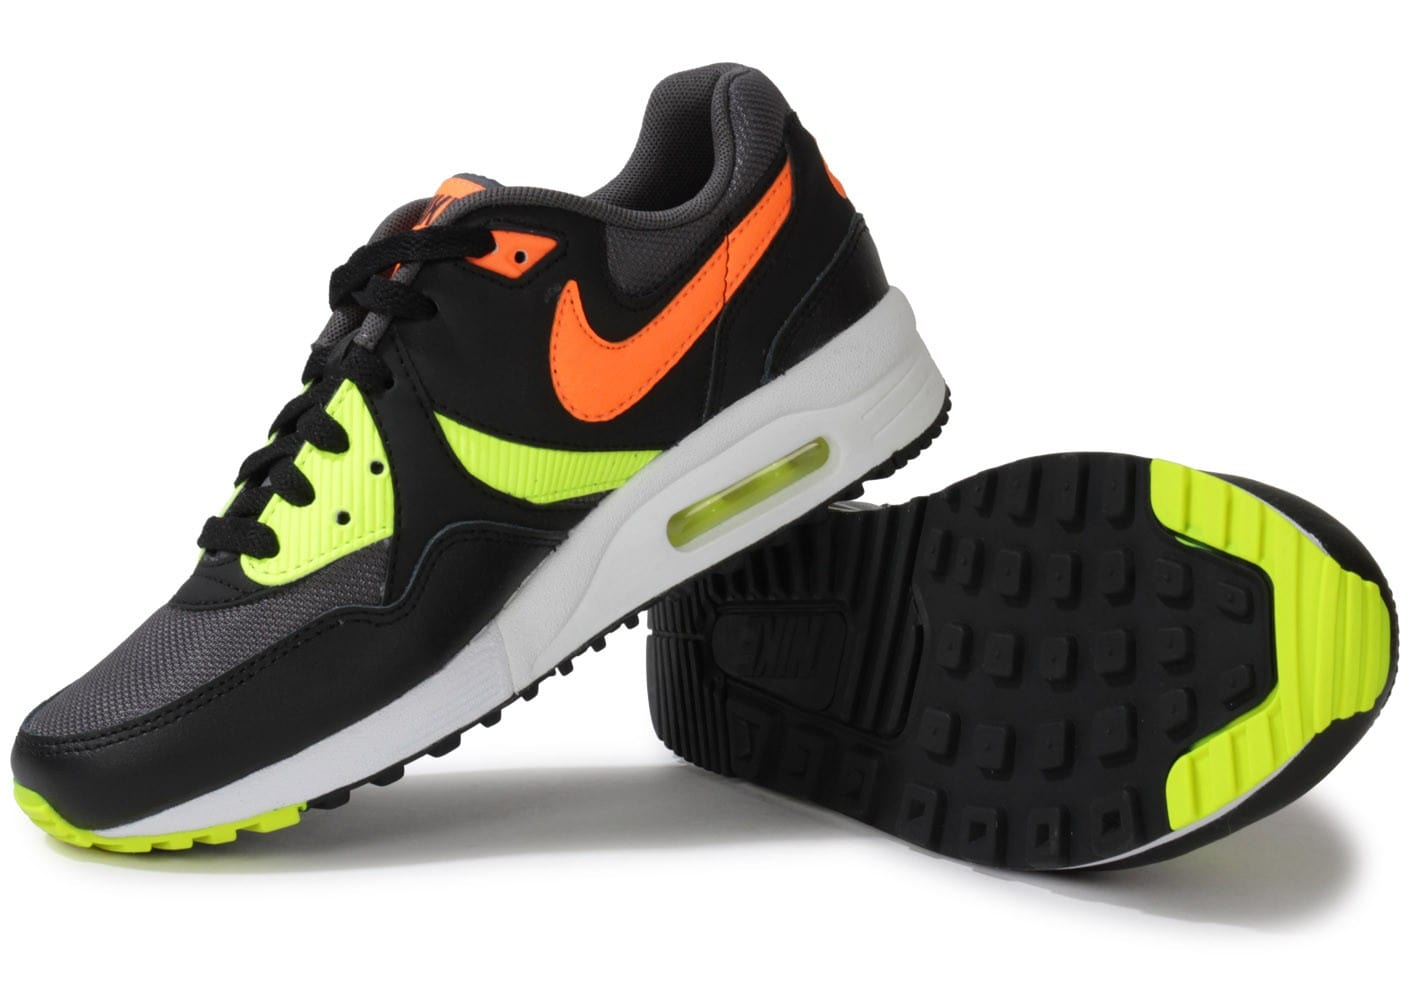 nike air max light junior grise orange chaussures chaussures chausport. Black Bedroom Furniture Sets. Home Design Ideas